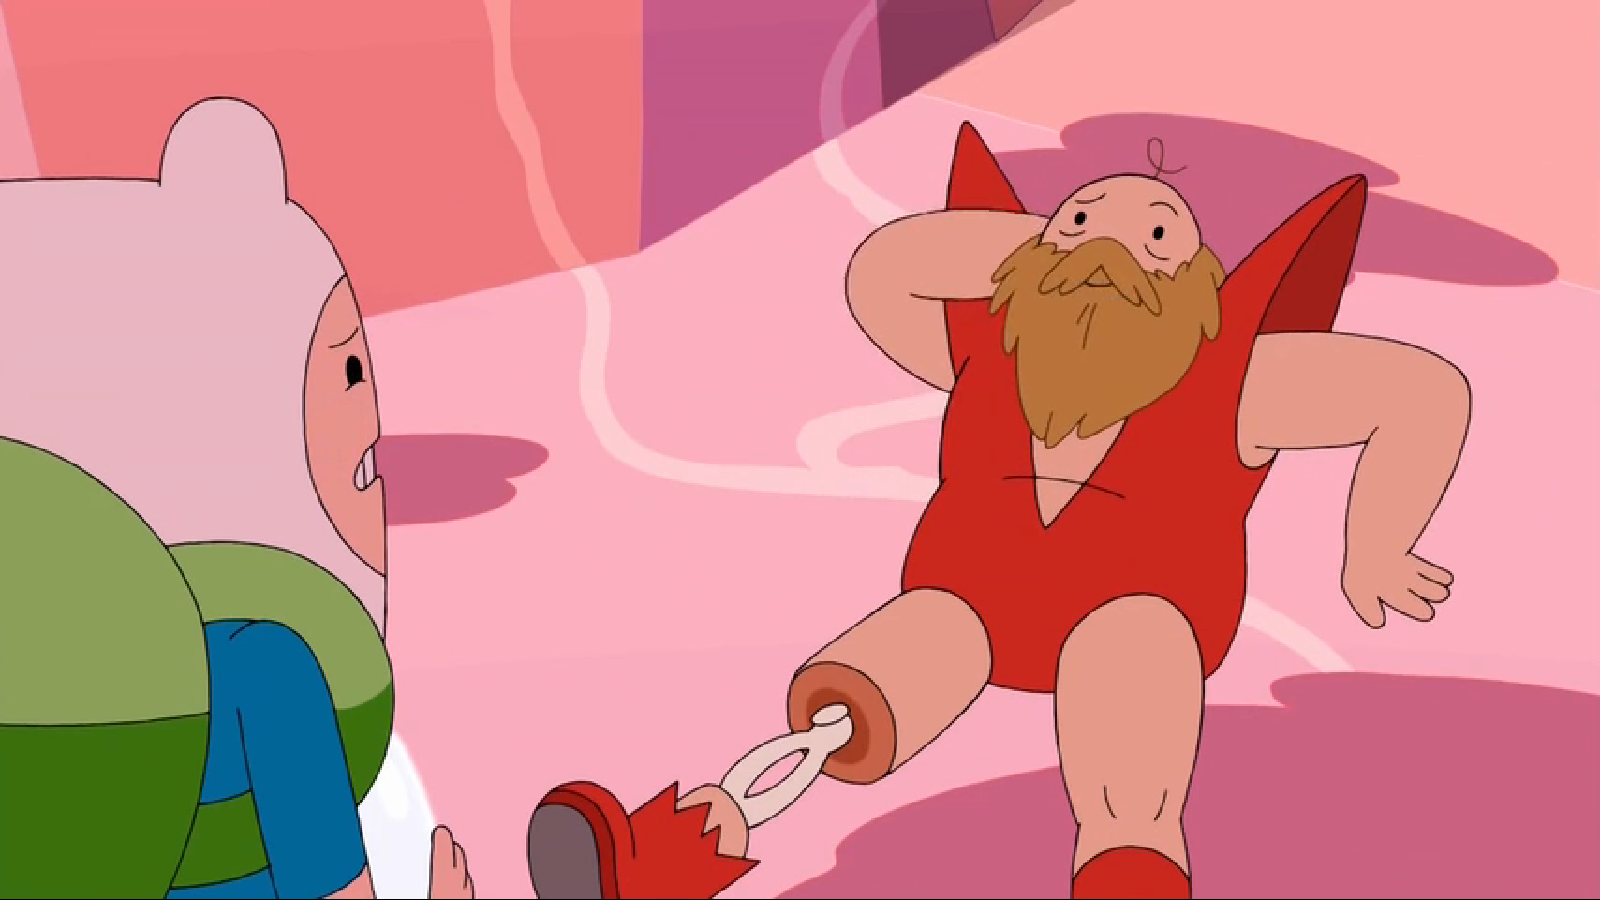 Finn S Relationships The Adventure Time Wiki Mathematical